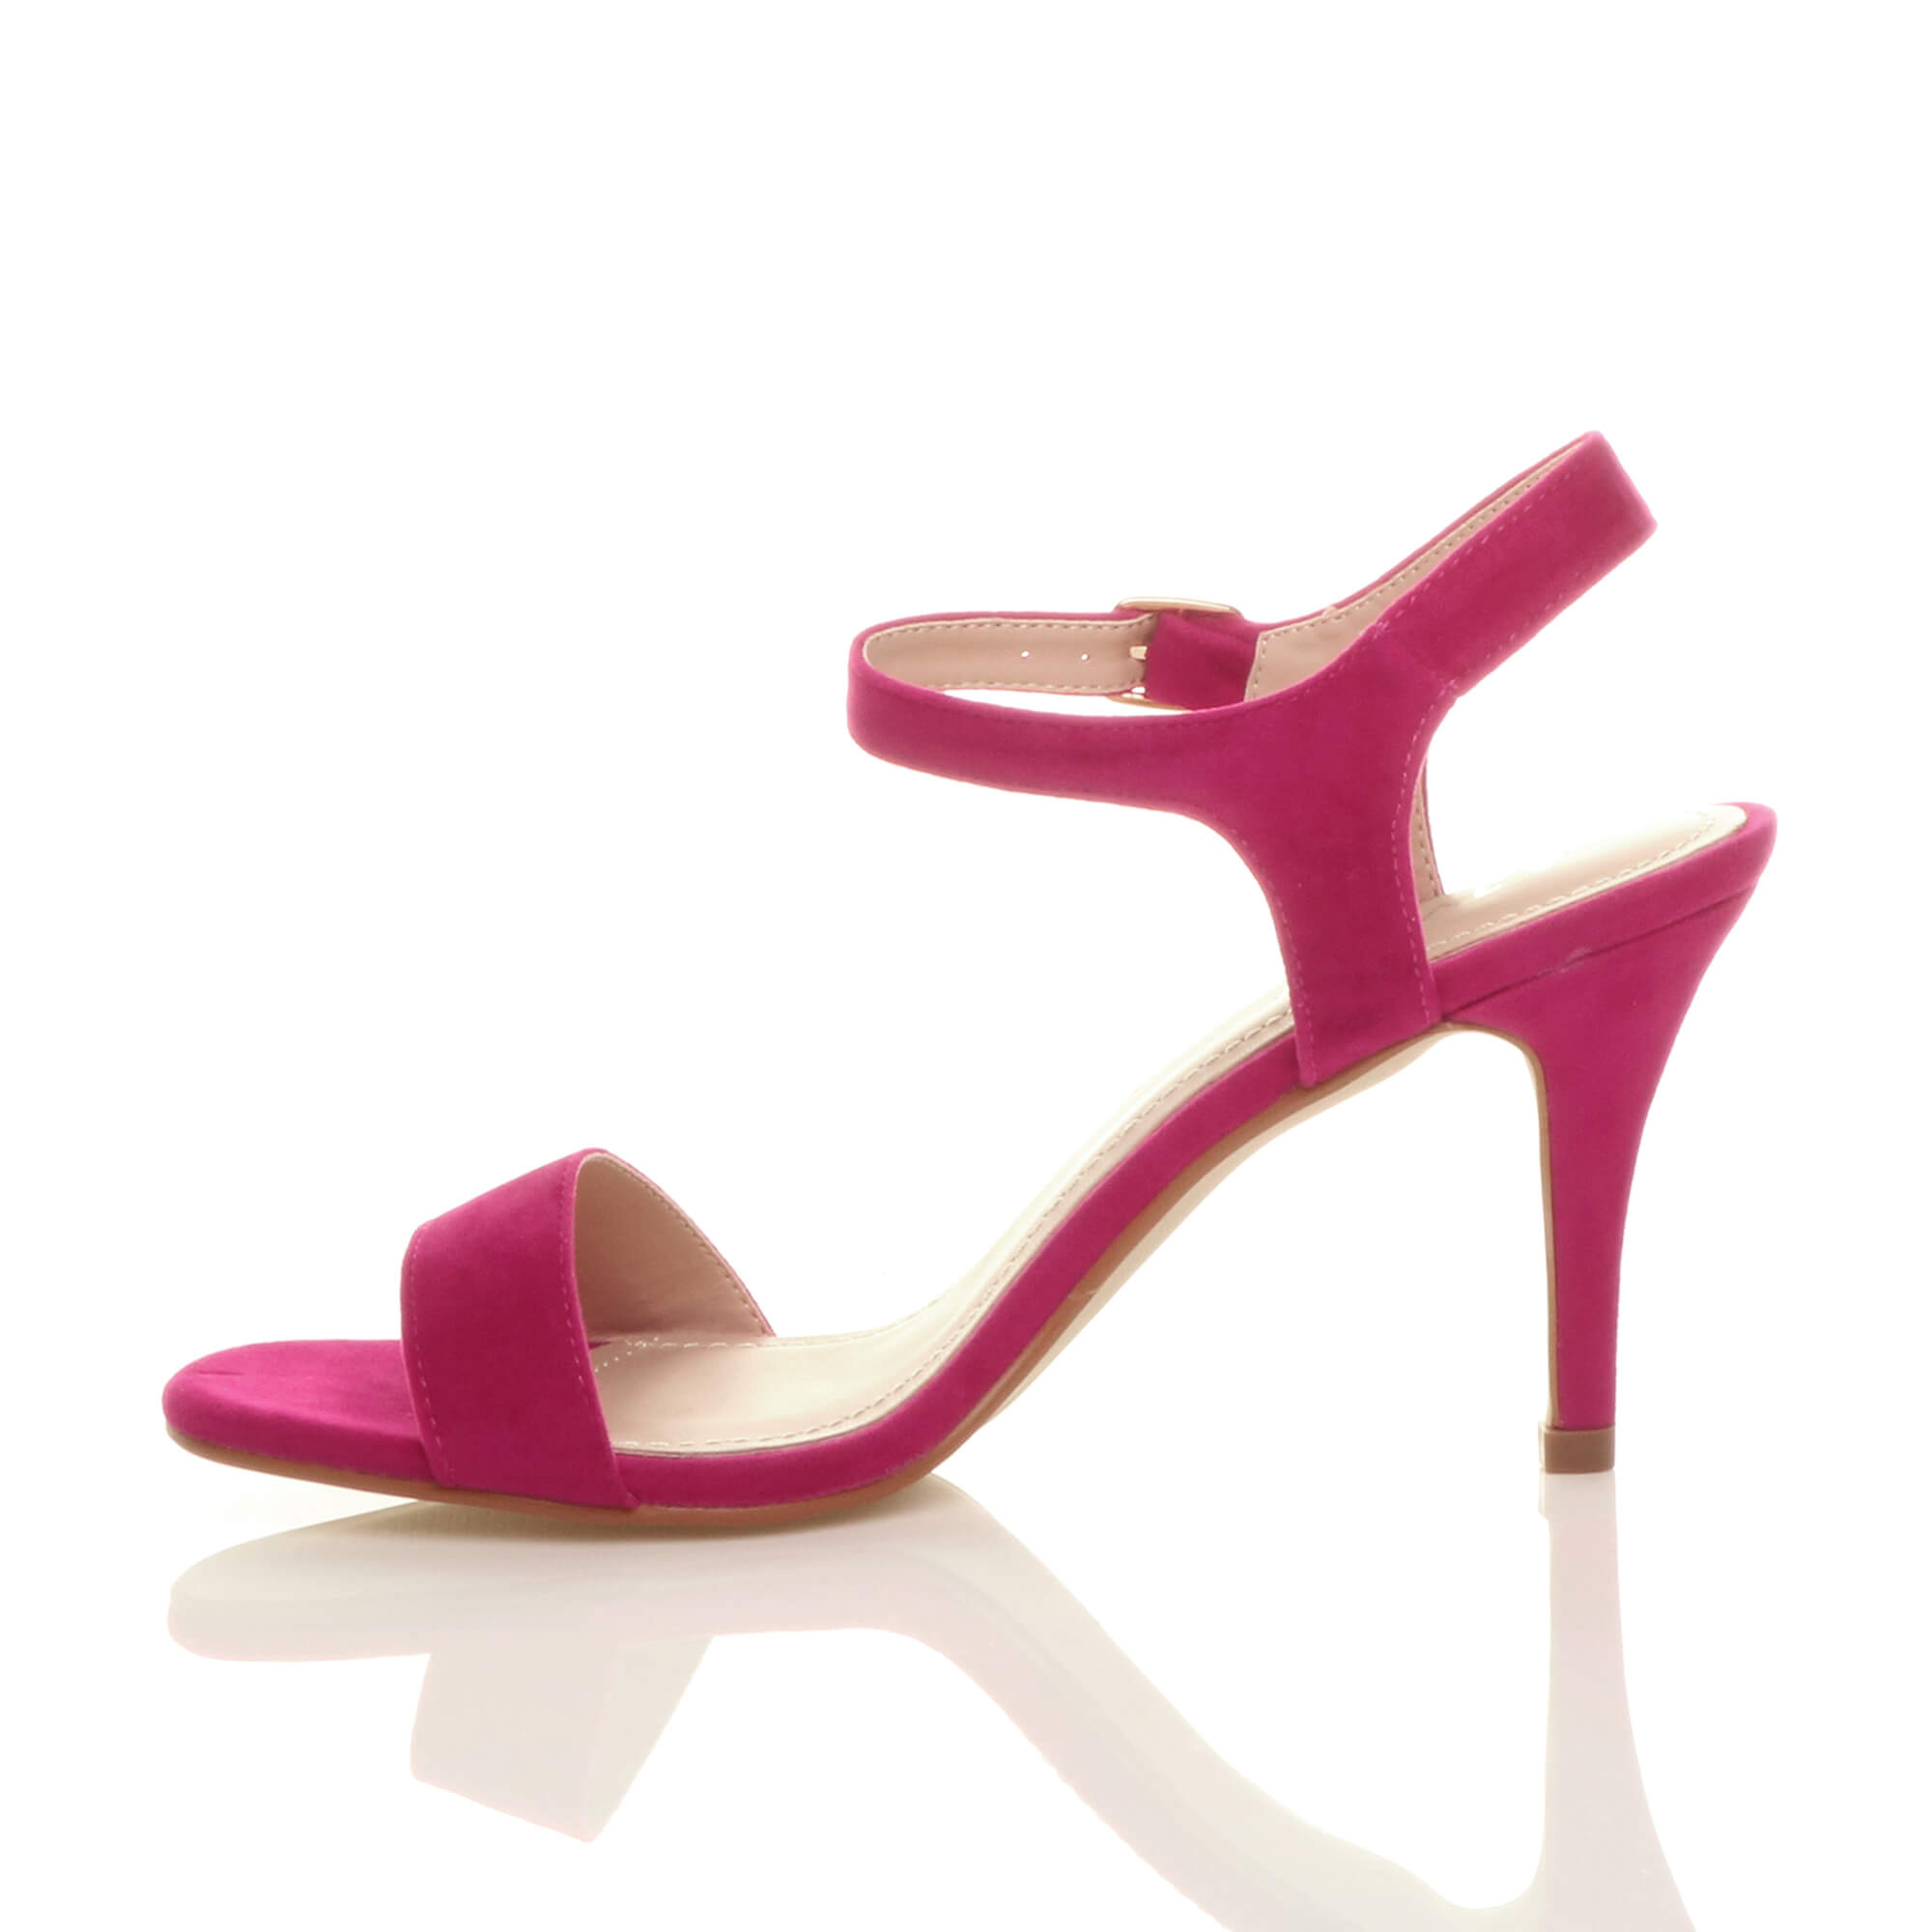 WOMENS-LADIES-HIGH-HEEL-BUCKLE-STRAPPY-BASIC-BARELY-THERE-SANDALS-SHOES-SIZE thumbnail 32